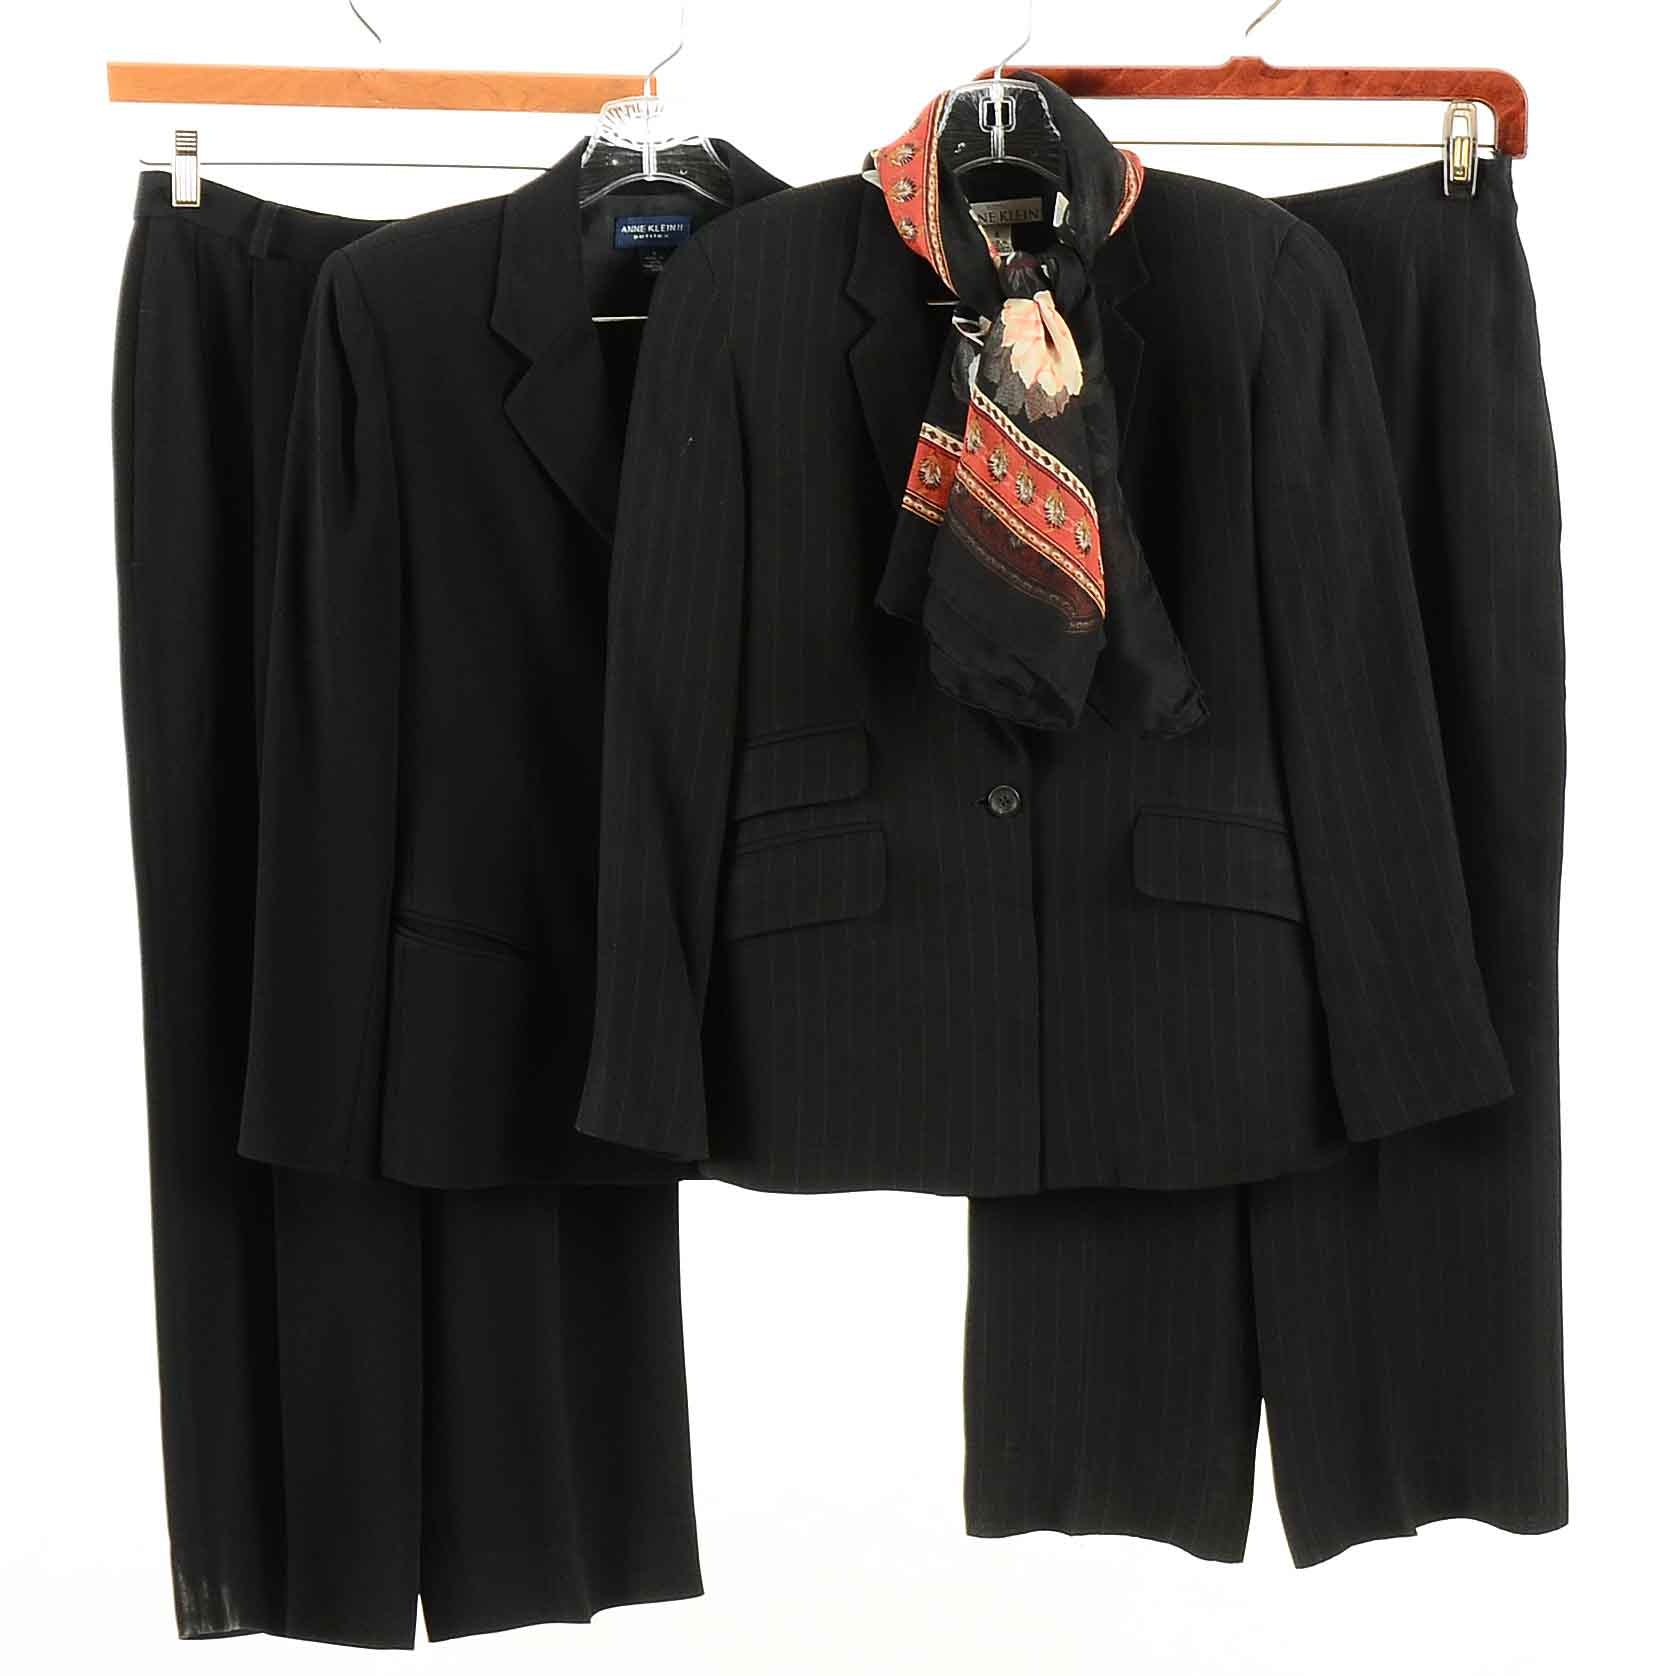 Women's Pant Suits by Anne Klein